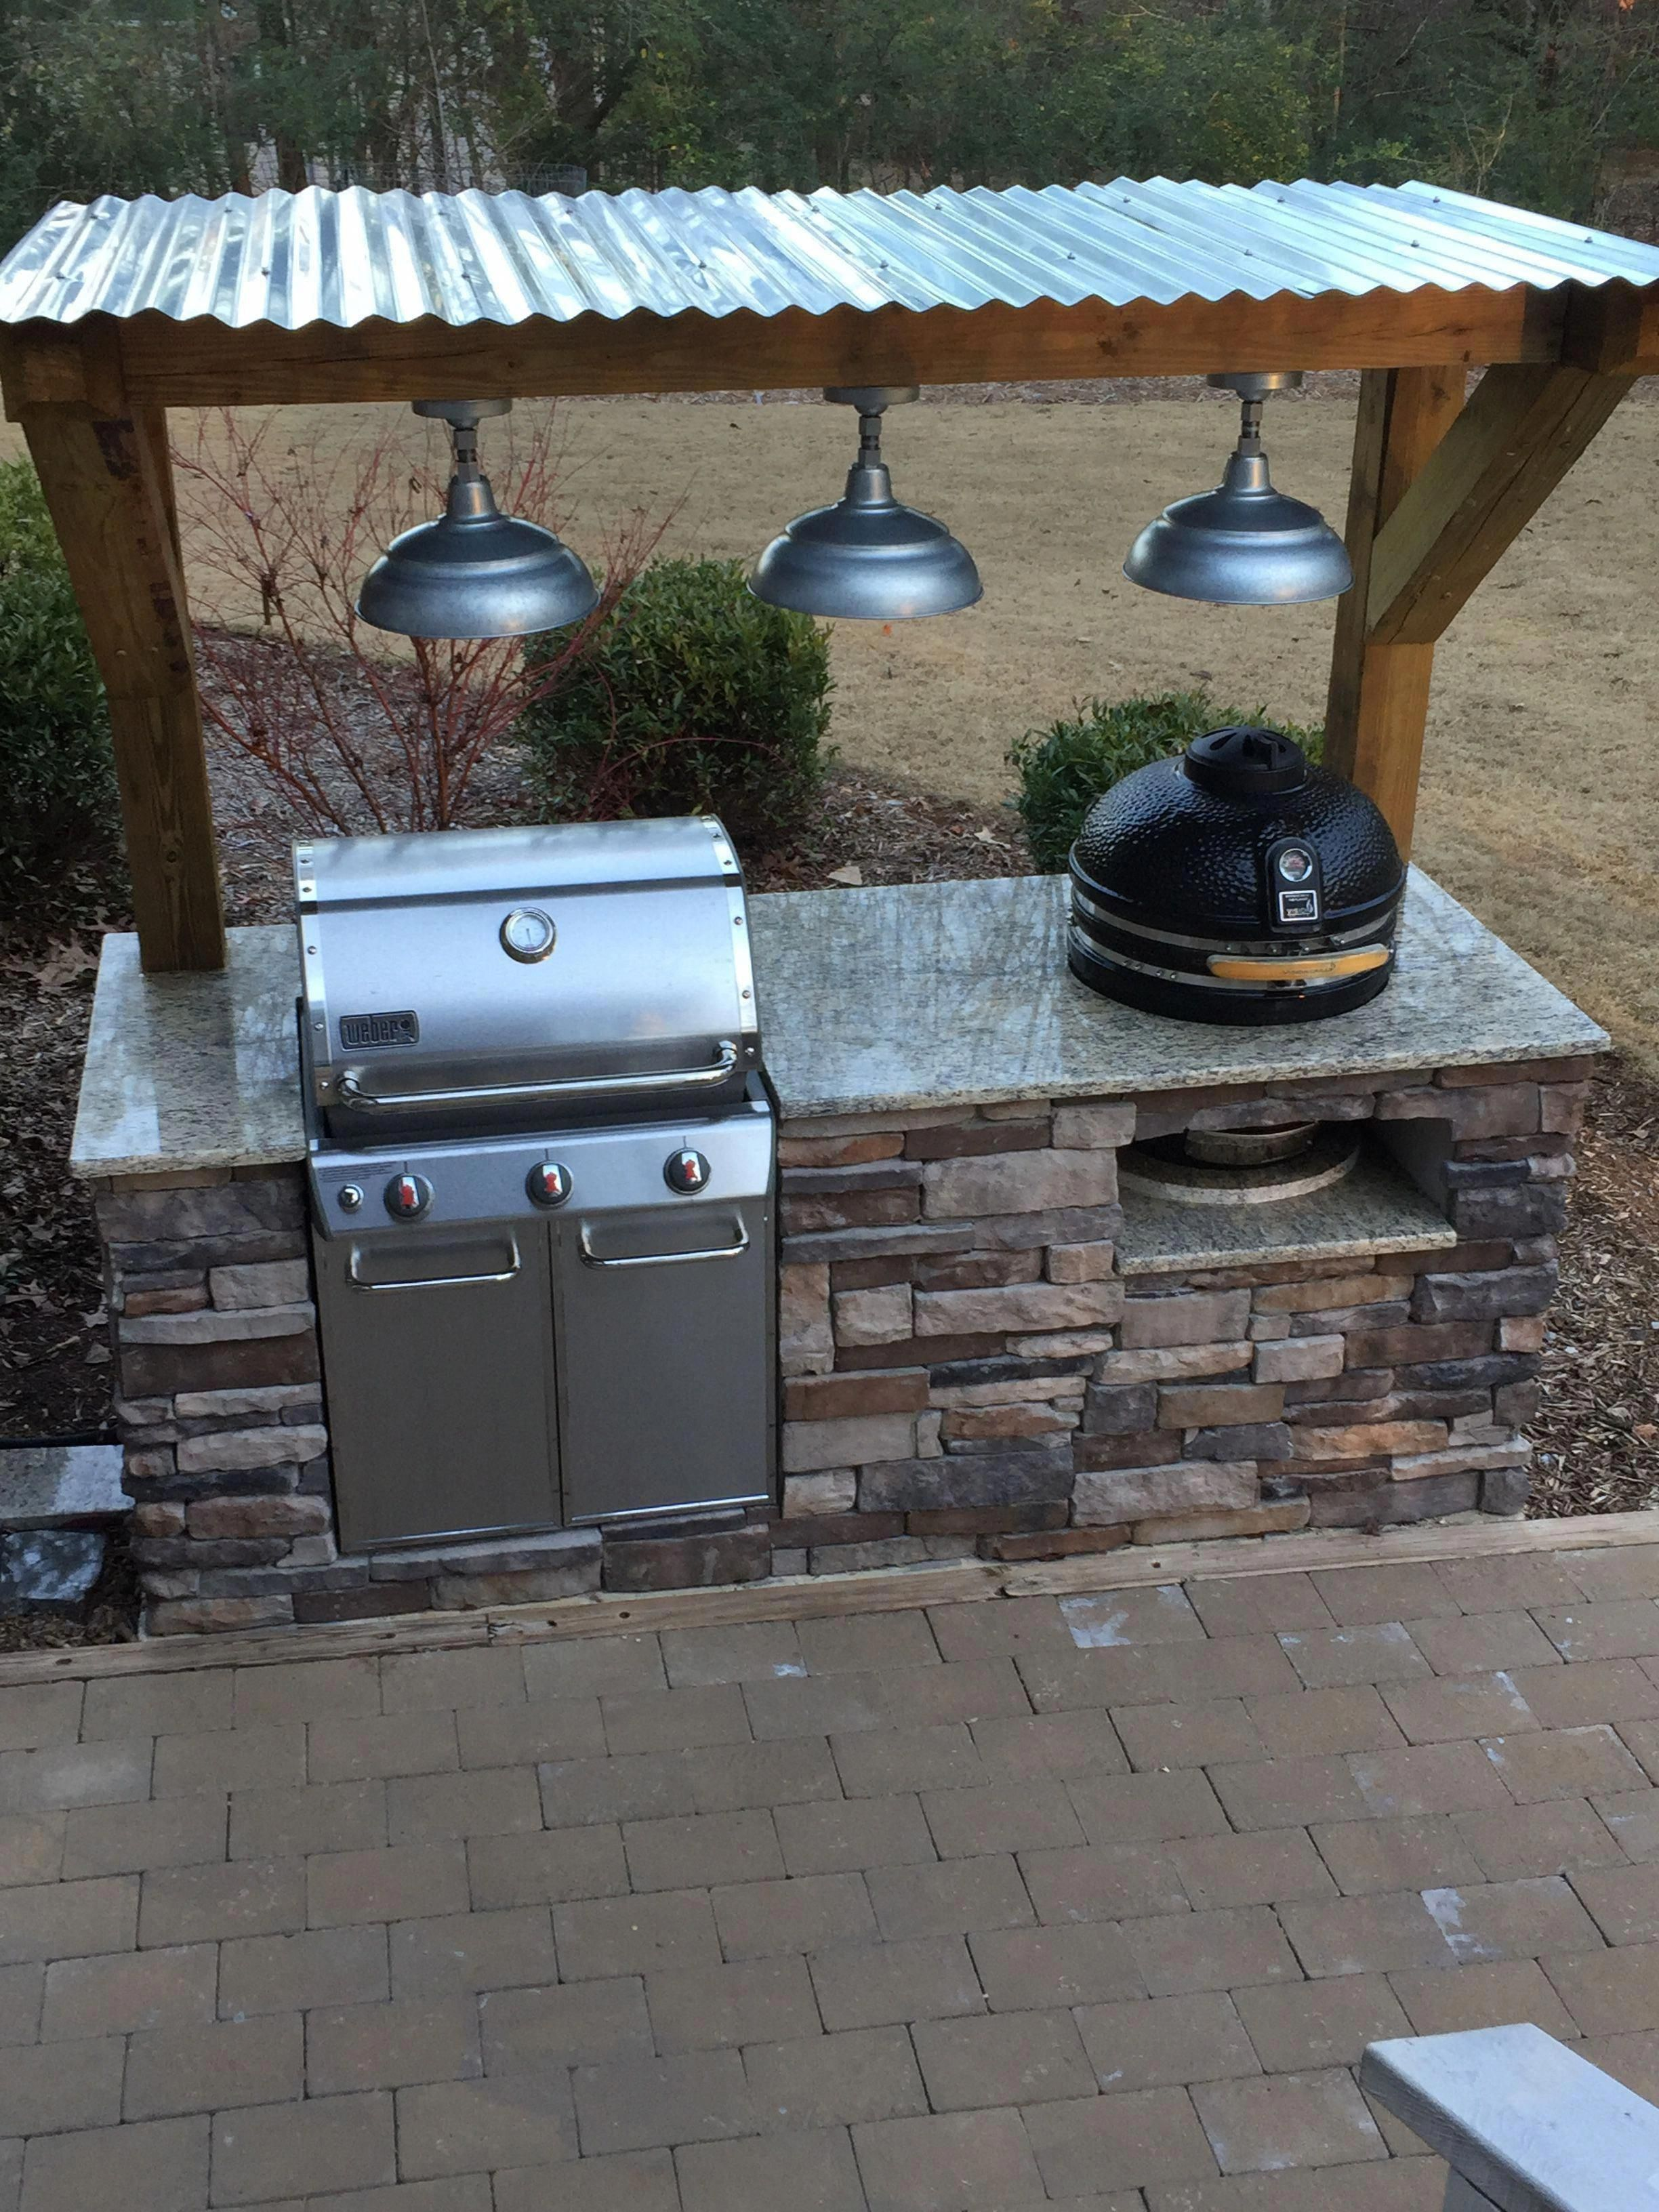 Outstanding Outdoor Kitchen Appliances Tiny House Info Is Available On Our Site Take A Look And You In 2020 Eingebauter Grill Kochen Im Freien Outdoor Dekorationen